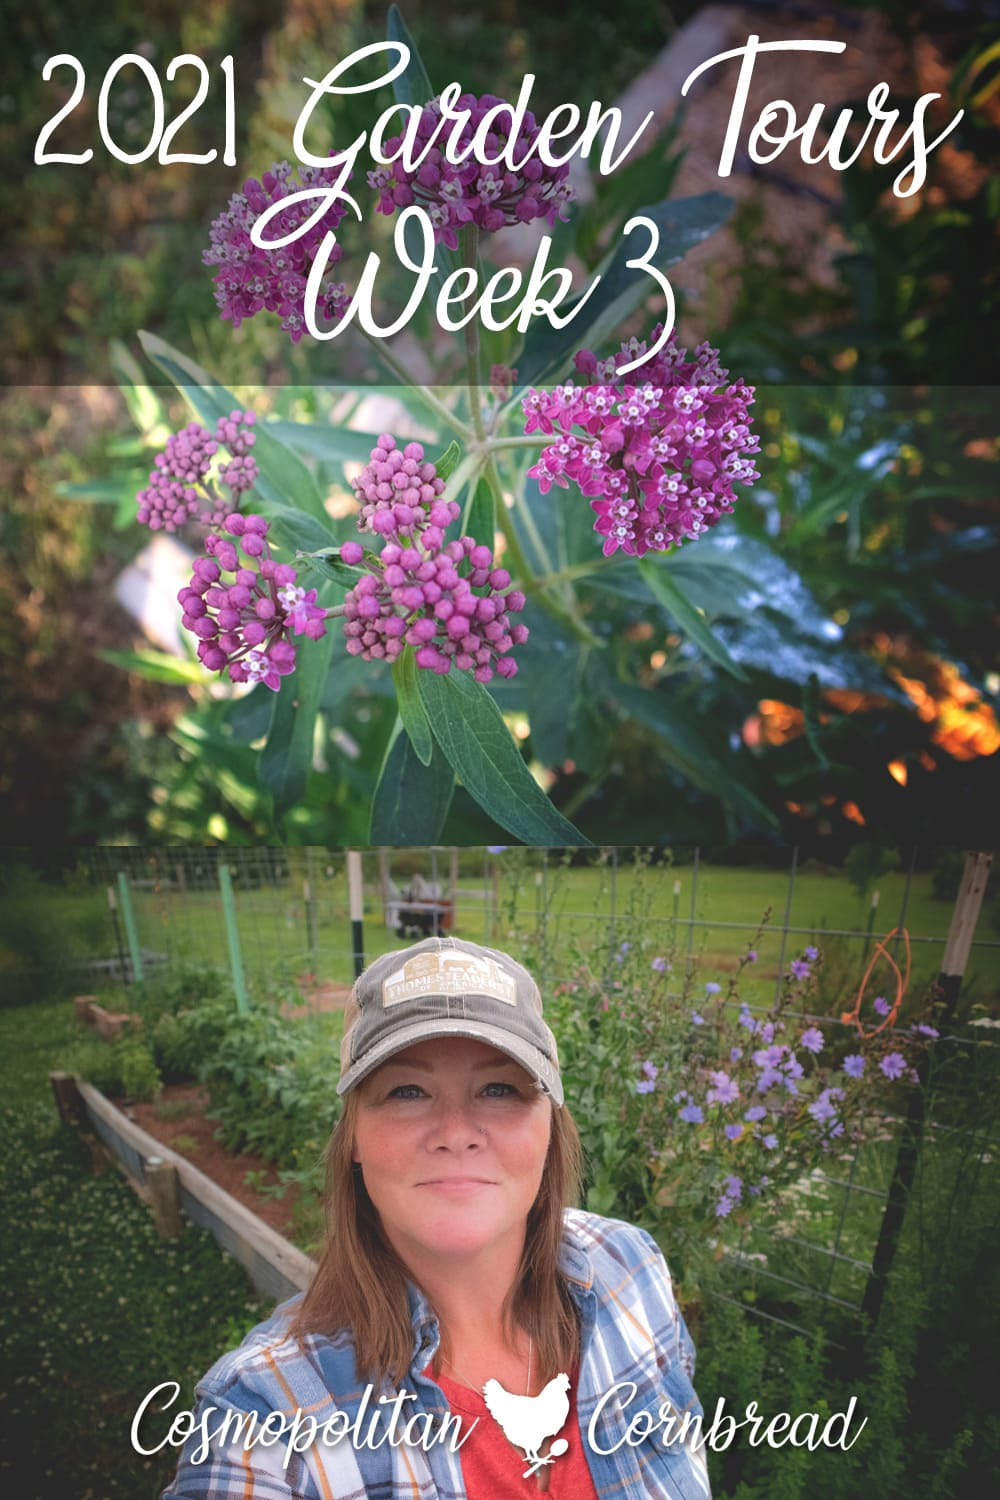 Join me for this week's garden tour, and see how the gardens are coming along.